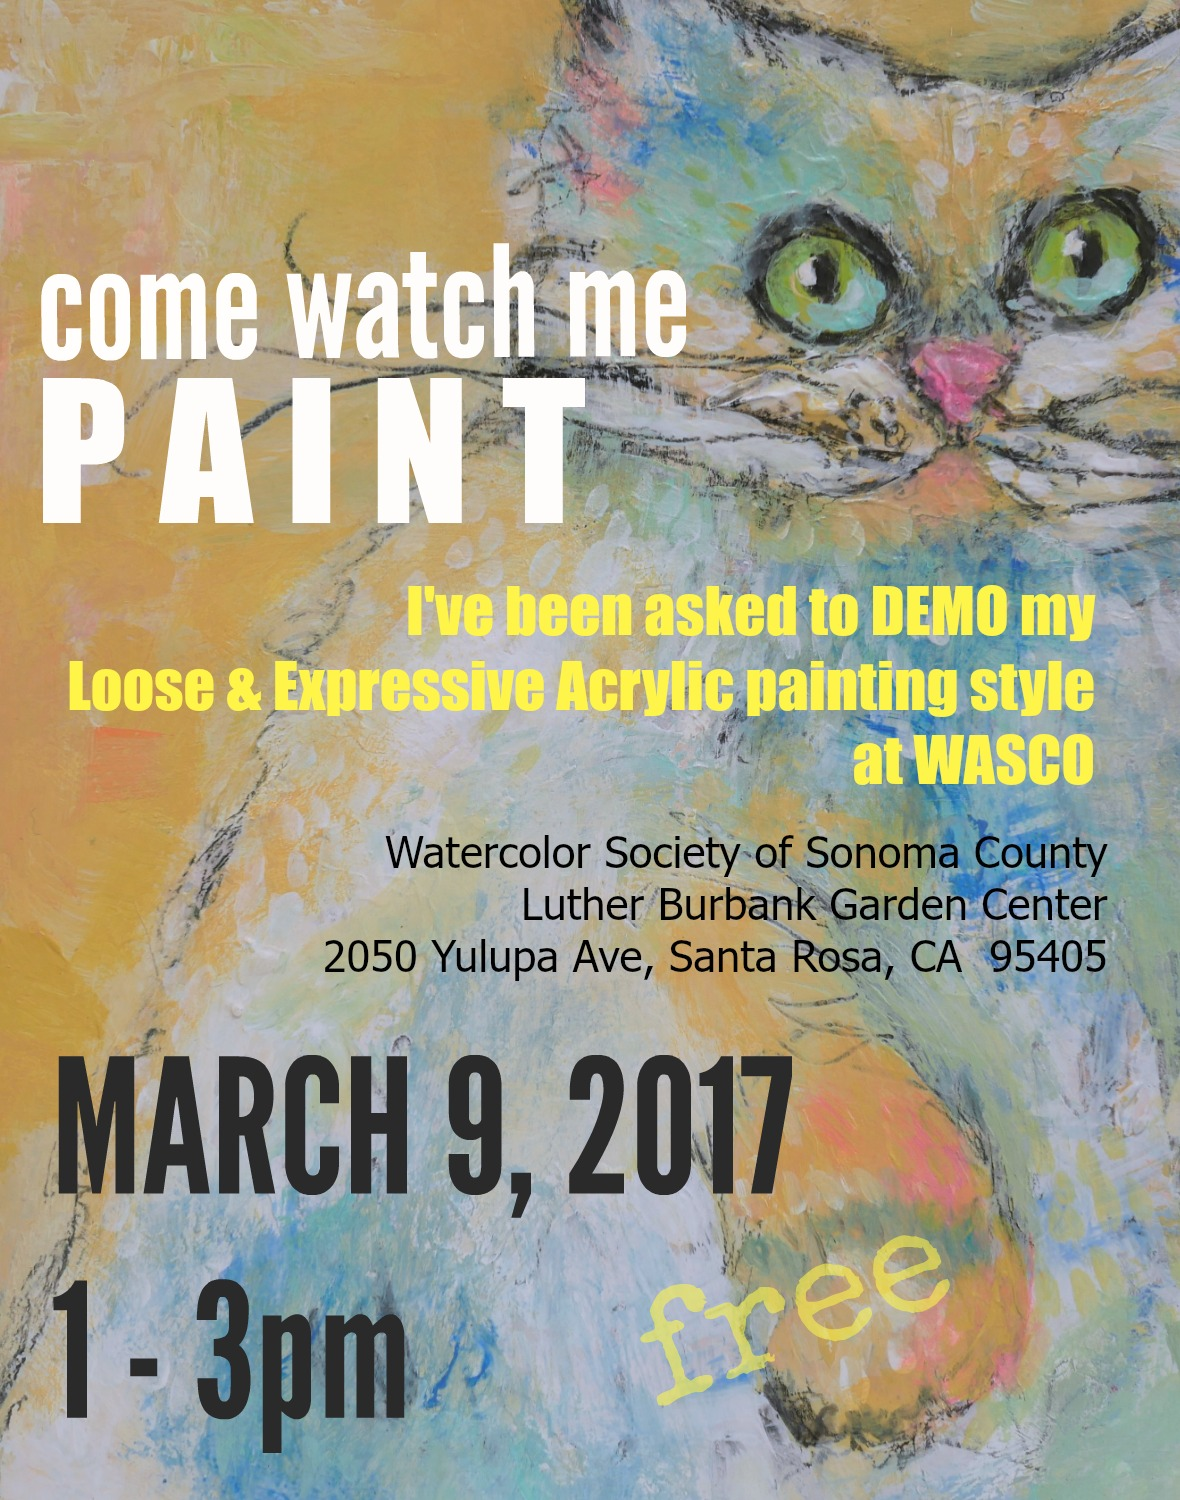 I am delighted that WASCO has invited me to demo at their monthly meeting in March. Come One, Come All. FREE!